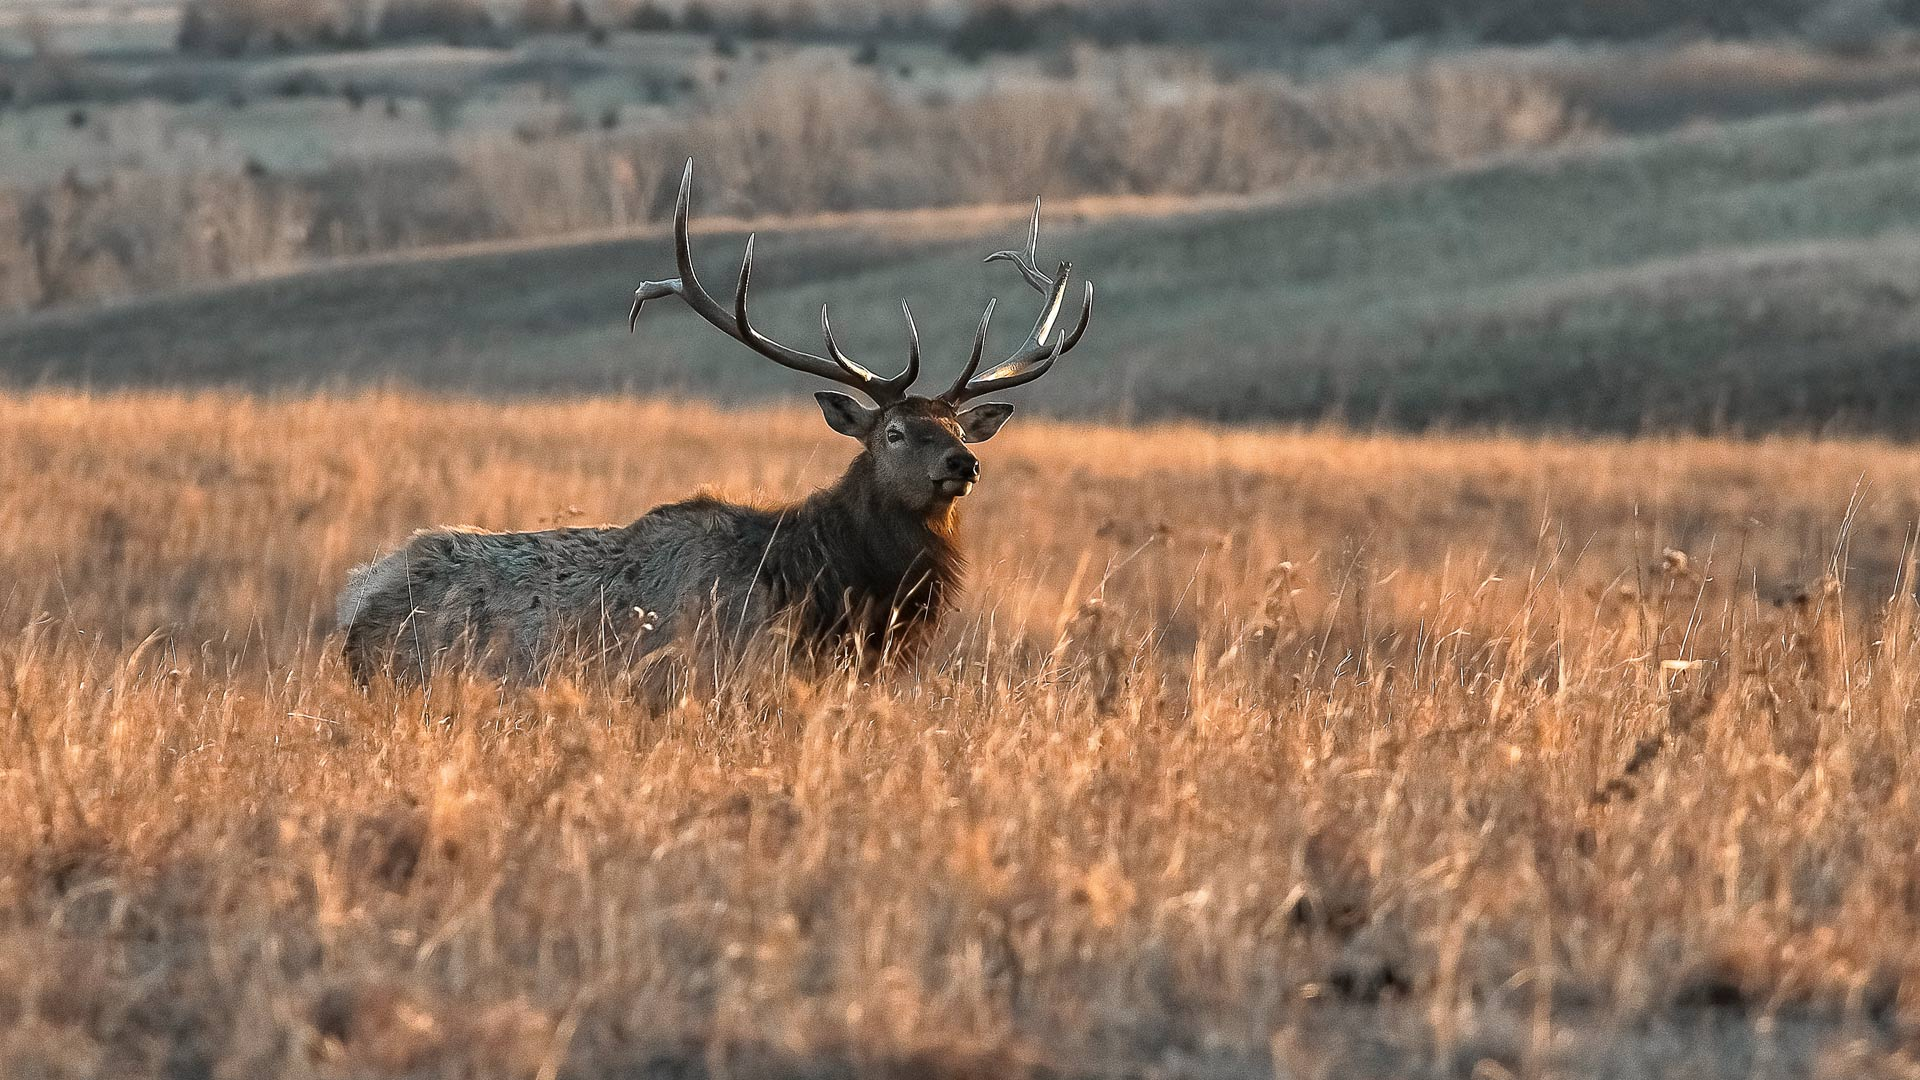 A North American Bull Elk rests in a field.